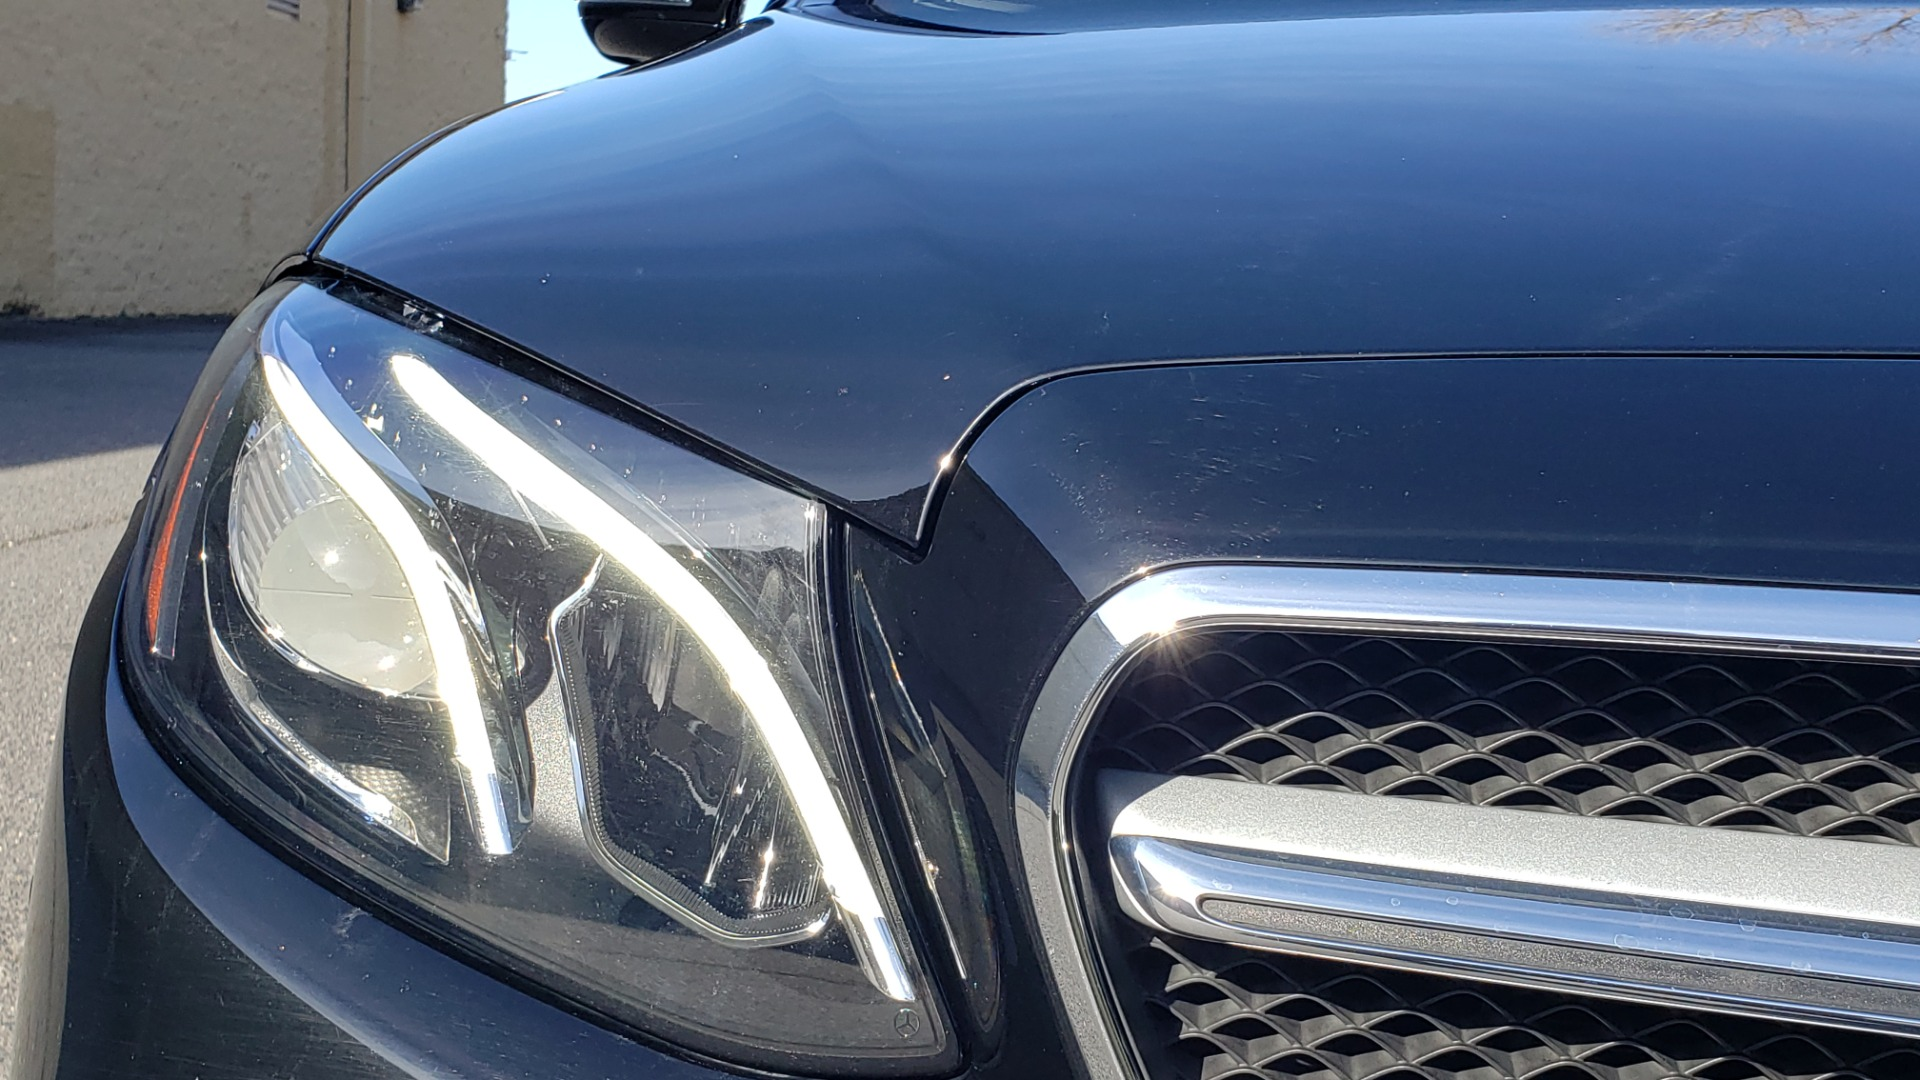 Used 2017 Mercedes-Benz E-CLASS E 300 PREMIUM / NAV / SUNROOF / BURMESTER / HTD STS / REARVIEW for sale Sold at Formula Imports in Charlotte NC 28227 22